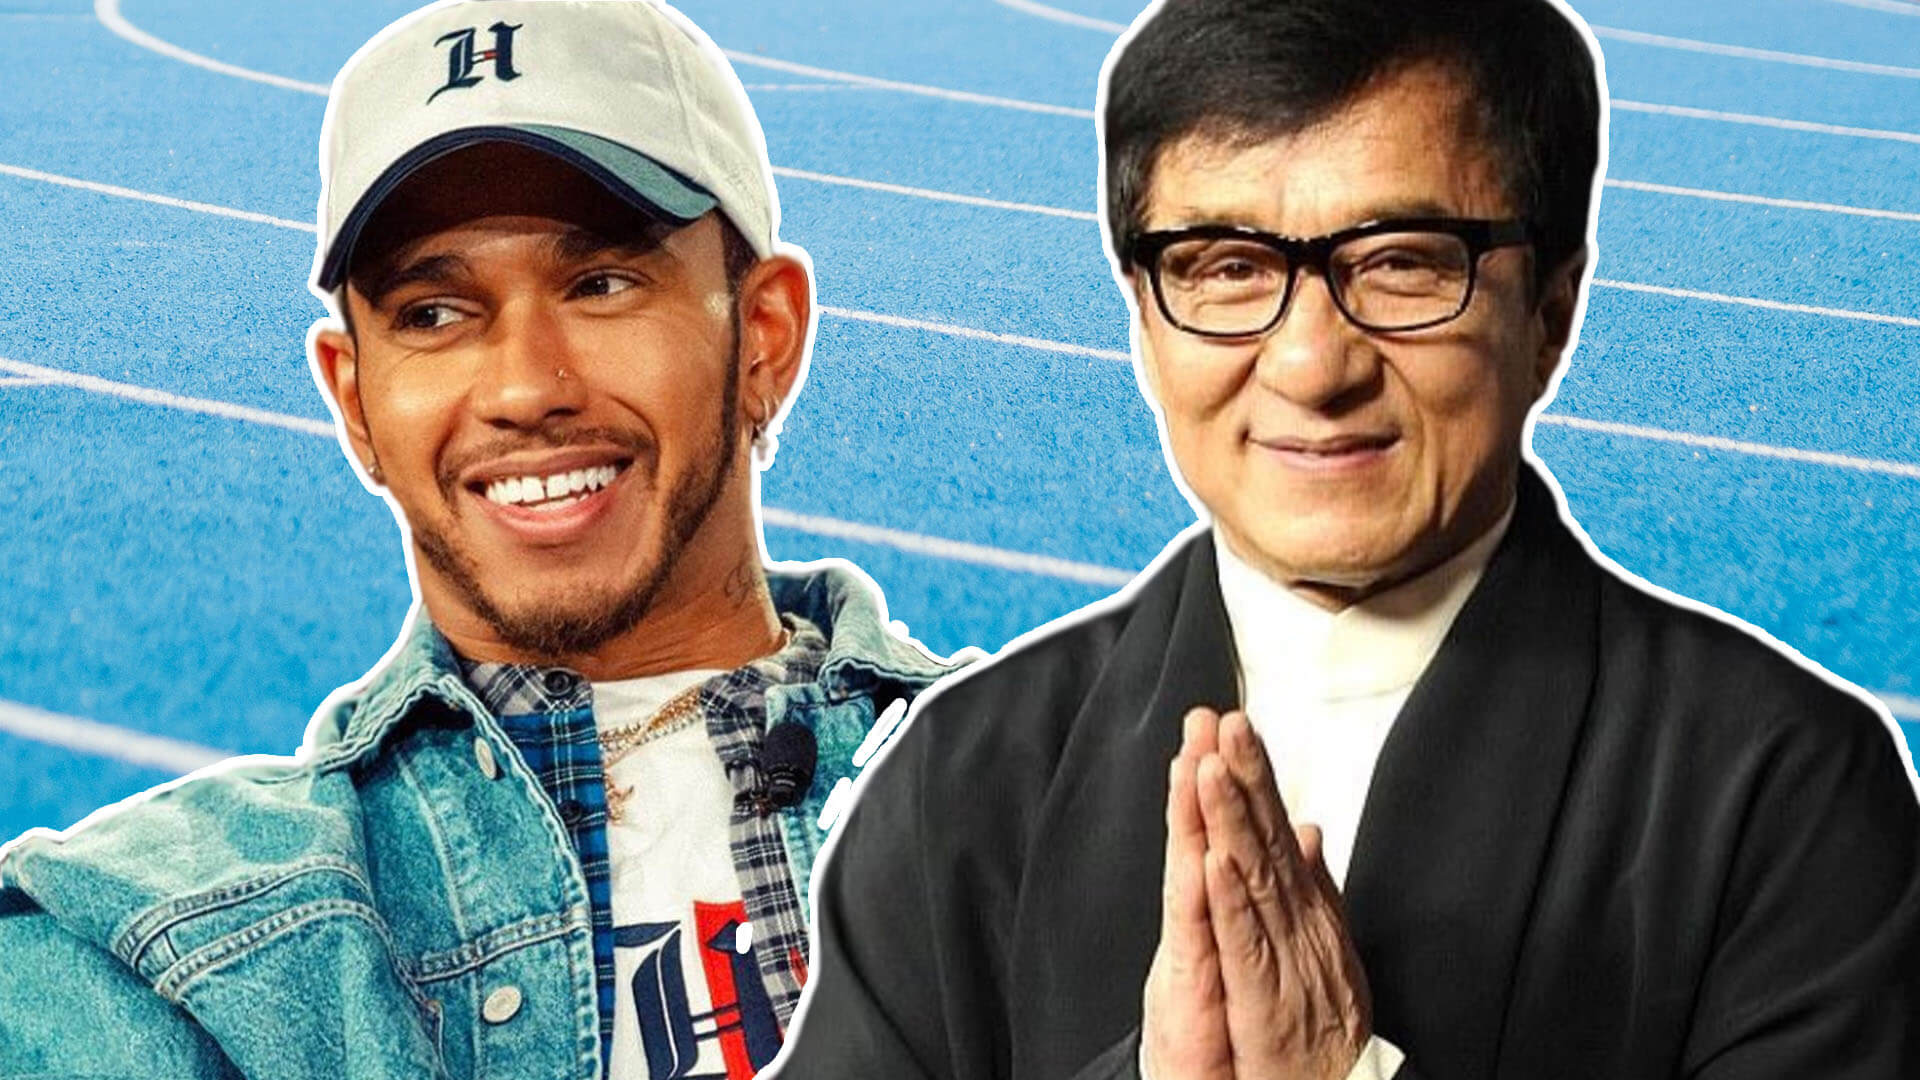 Lewis Hamilton and Jackie Chan Co-Produce 'The Game Changers'